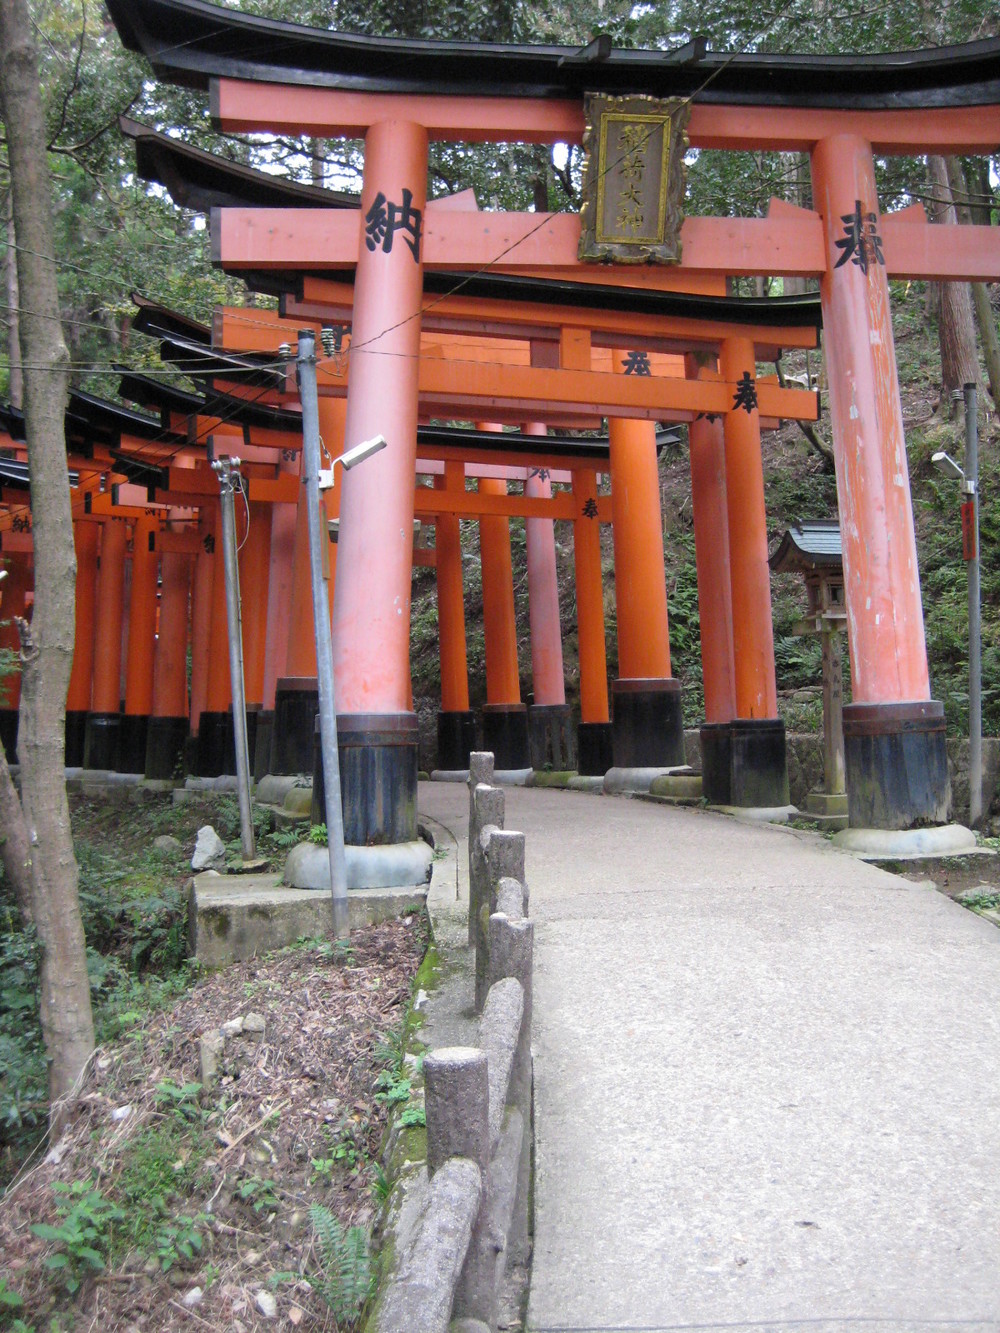 At Fushimi Inari, Kyoto, one of the strangest, most hallucinatory places I've been in my life. Founded in the 8th century, it is the mountain shrine of Inari, the Shinto rice-god, and god of worldly success. His mascot is the fox, or  kitsune . Hence, there are thousands of  torii  (gates) donated by businesses & individuals and hundreds of idols of  kitsune  everywhere.